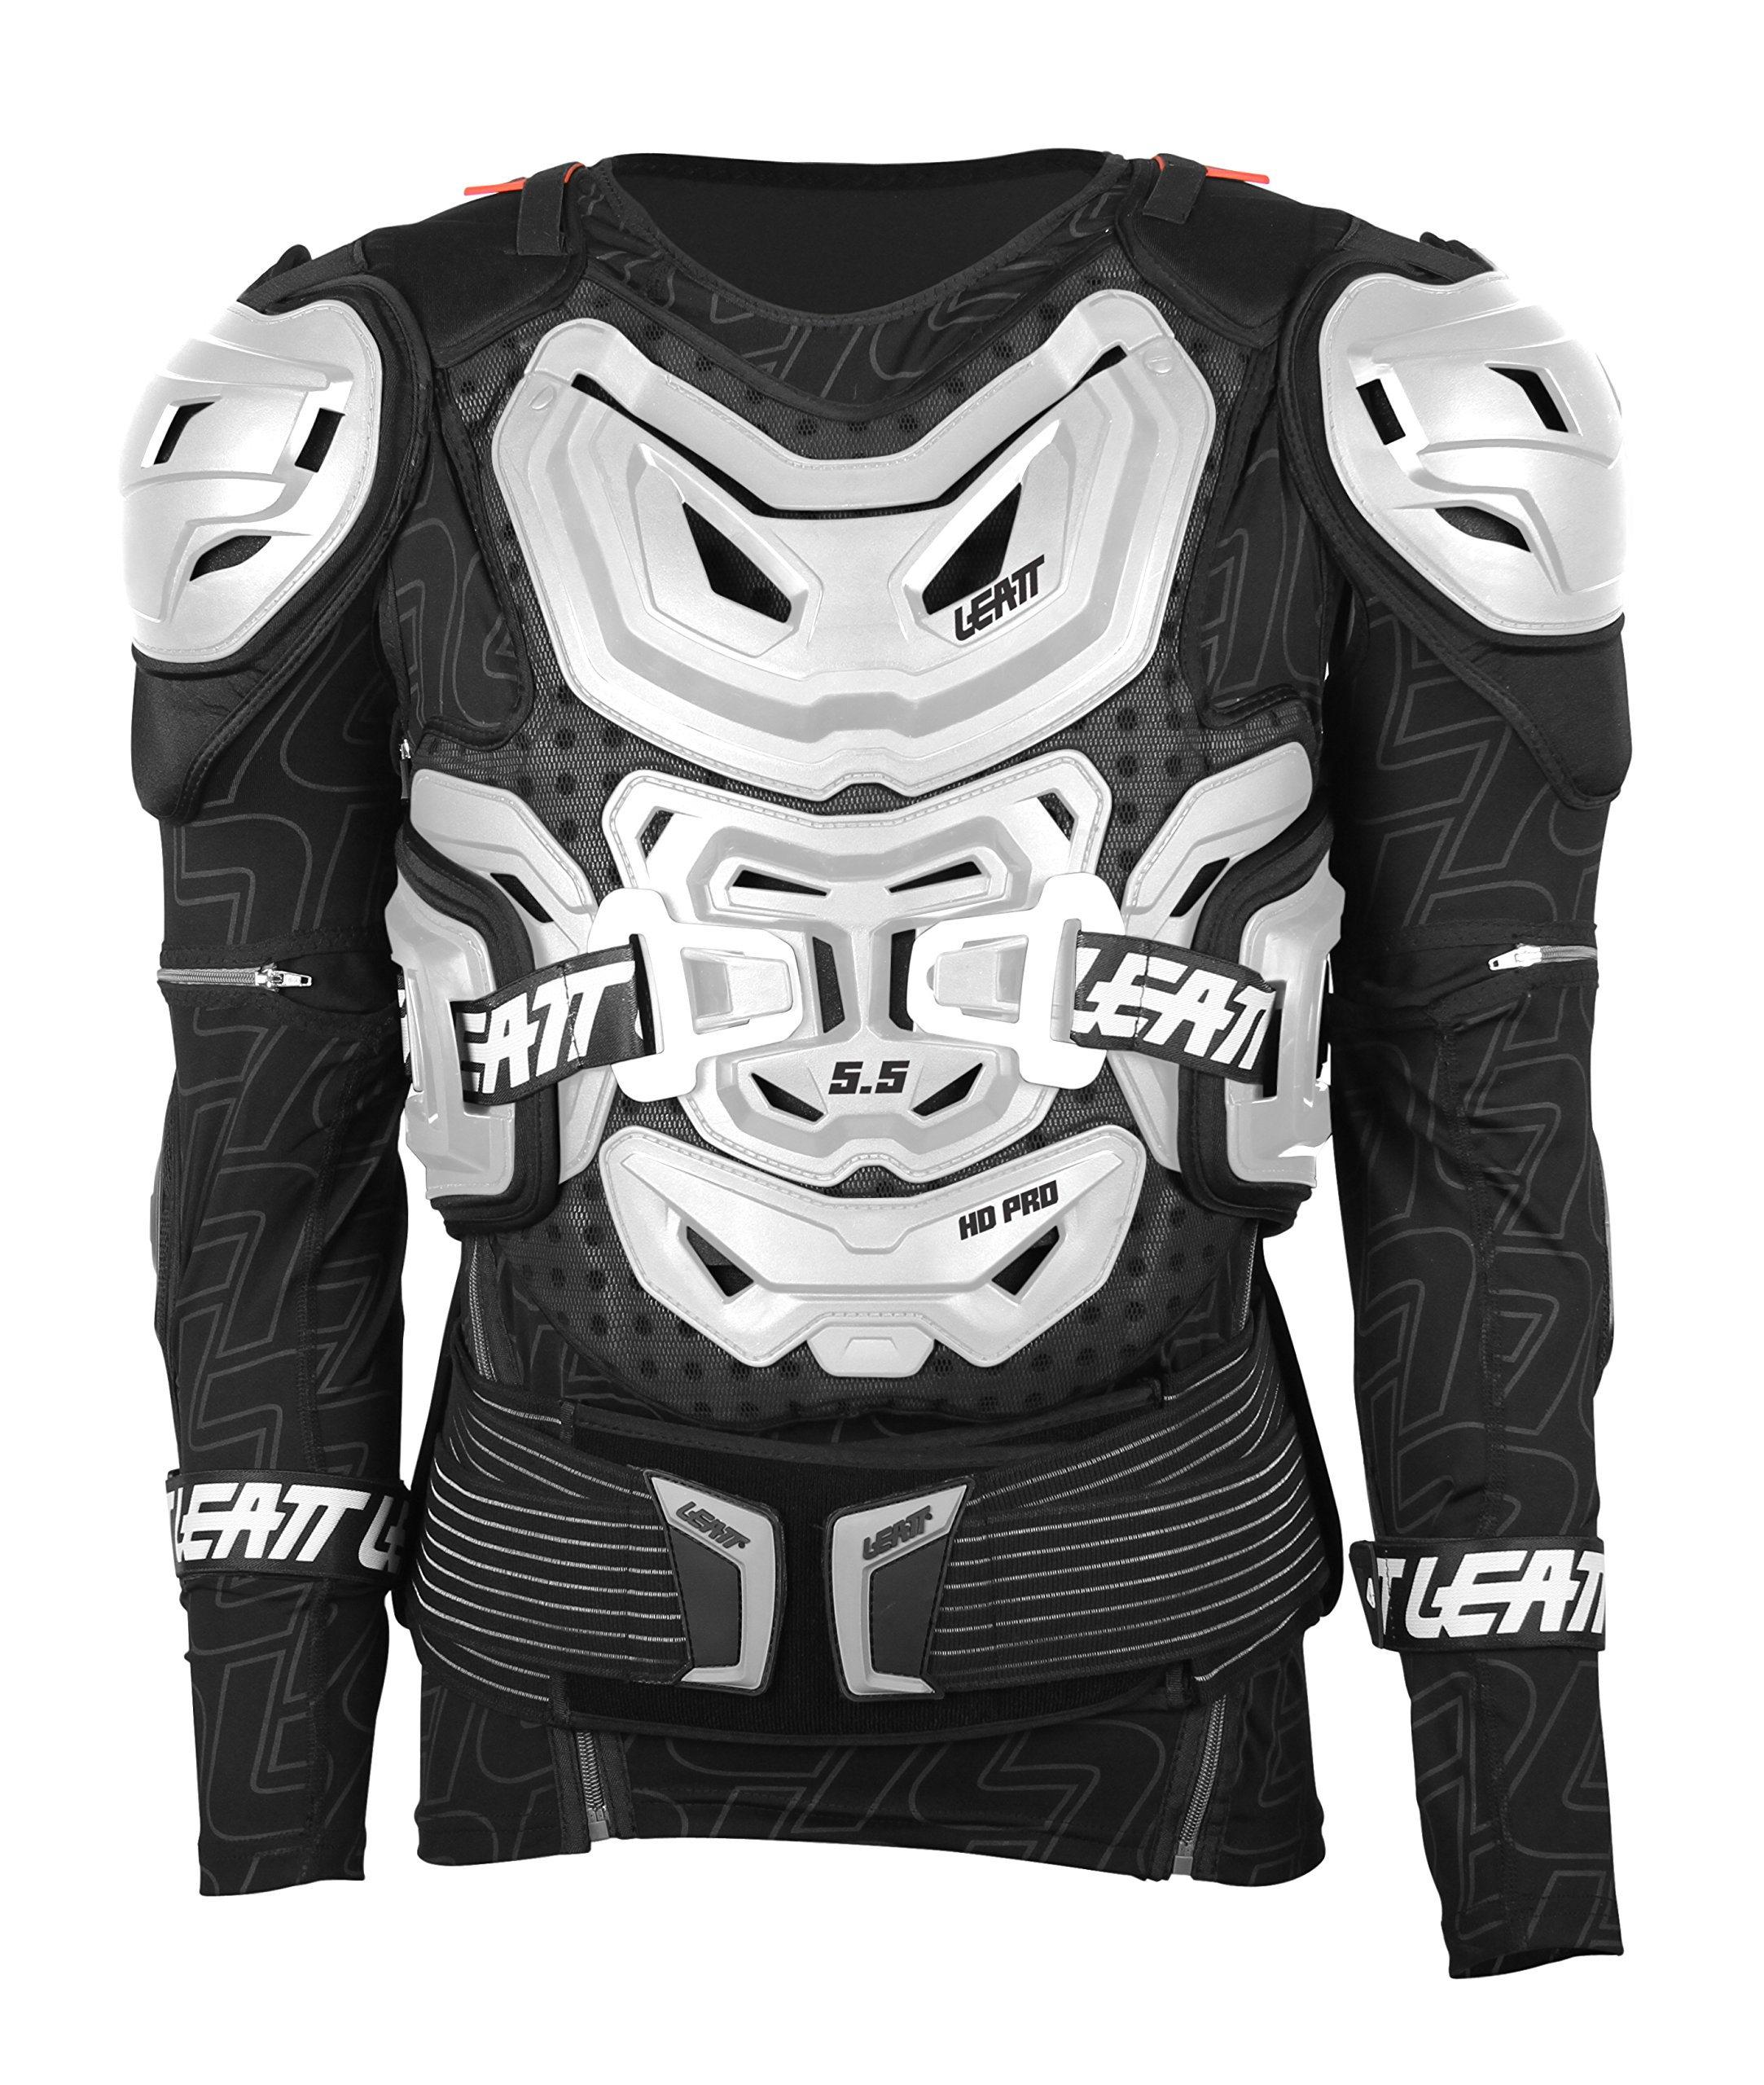 Leatt 5.5 Body Protector (White, Large/X-Large)